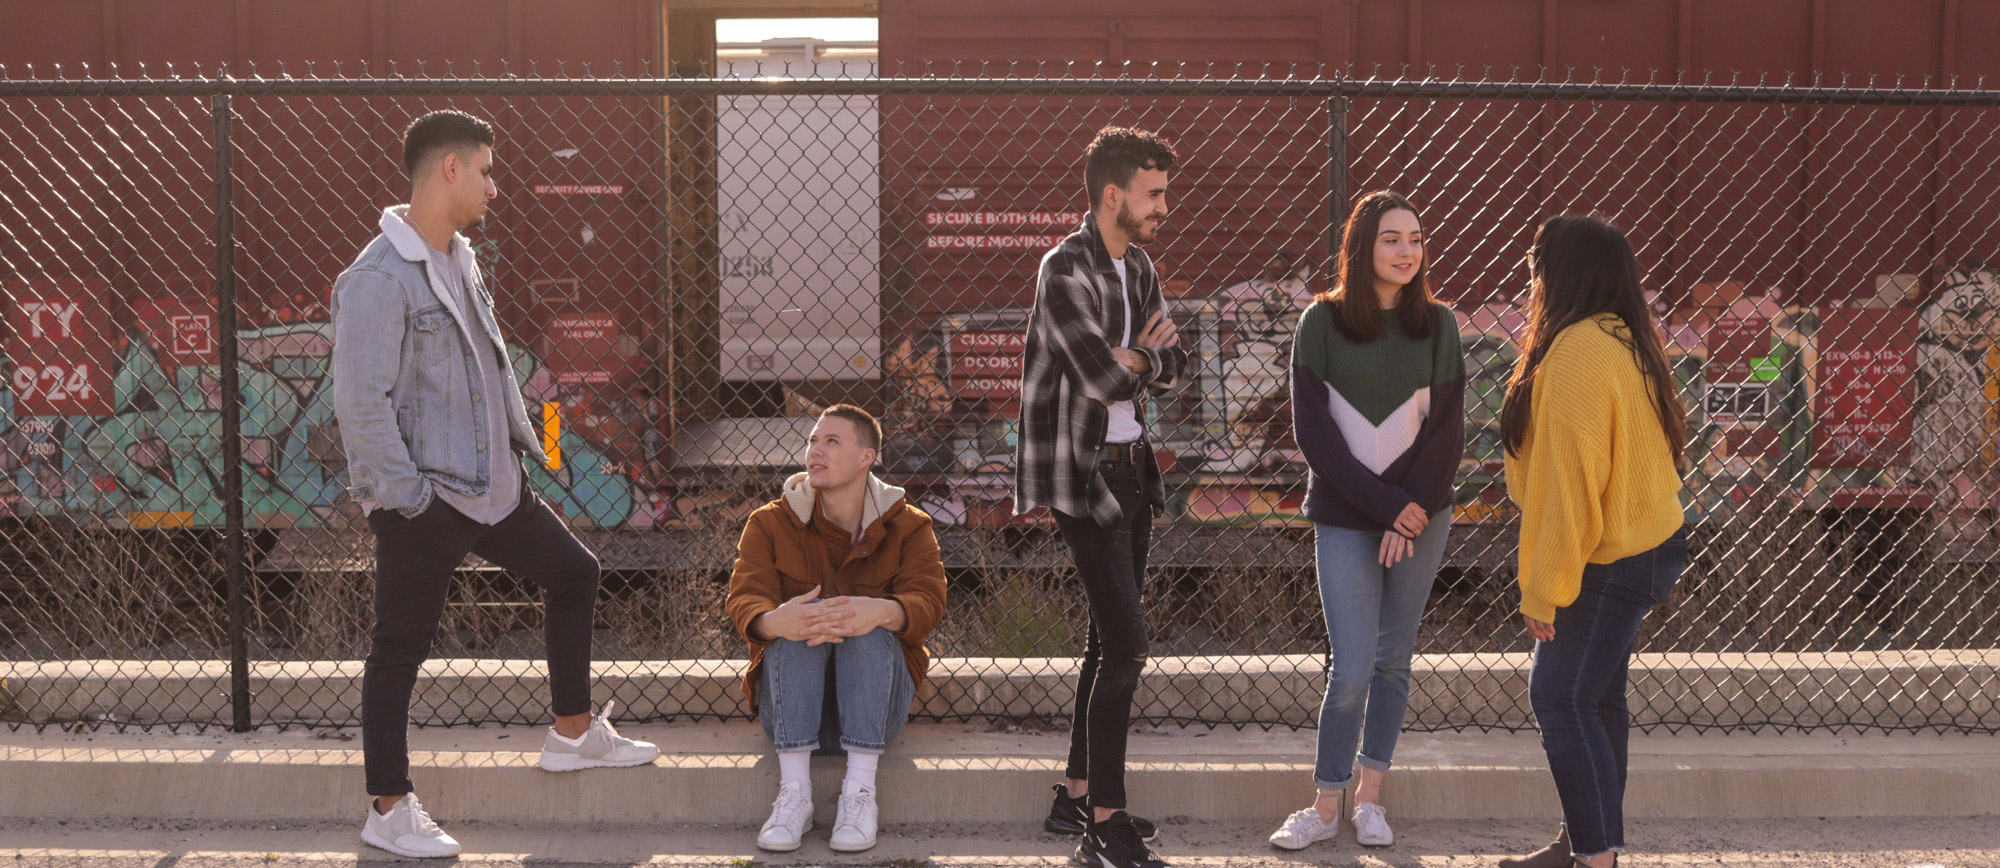 Five people in front of chain link fence talking